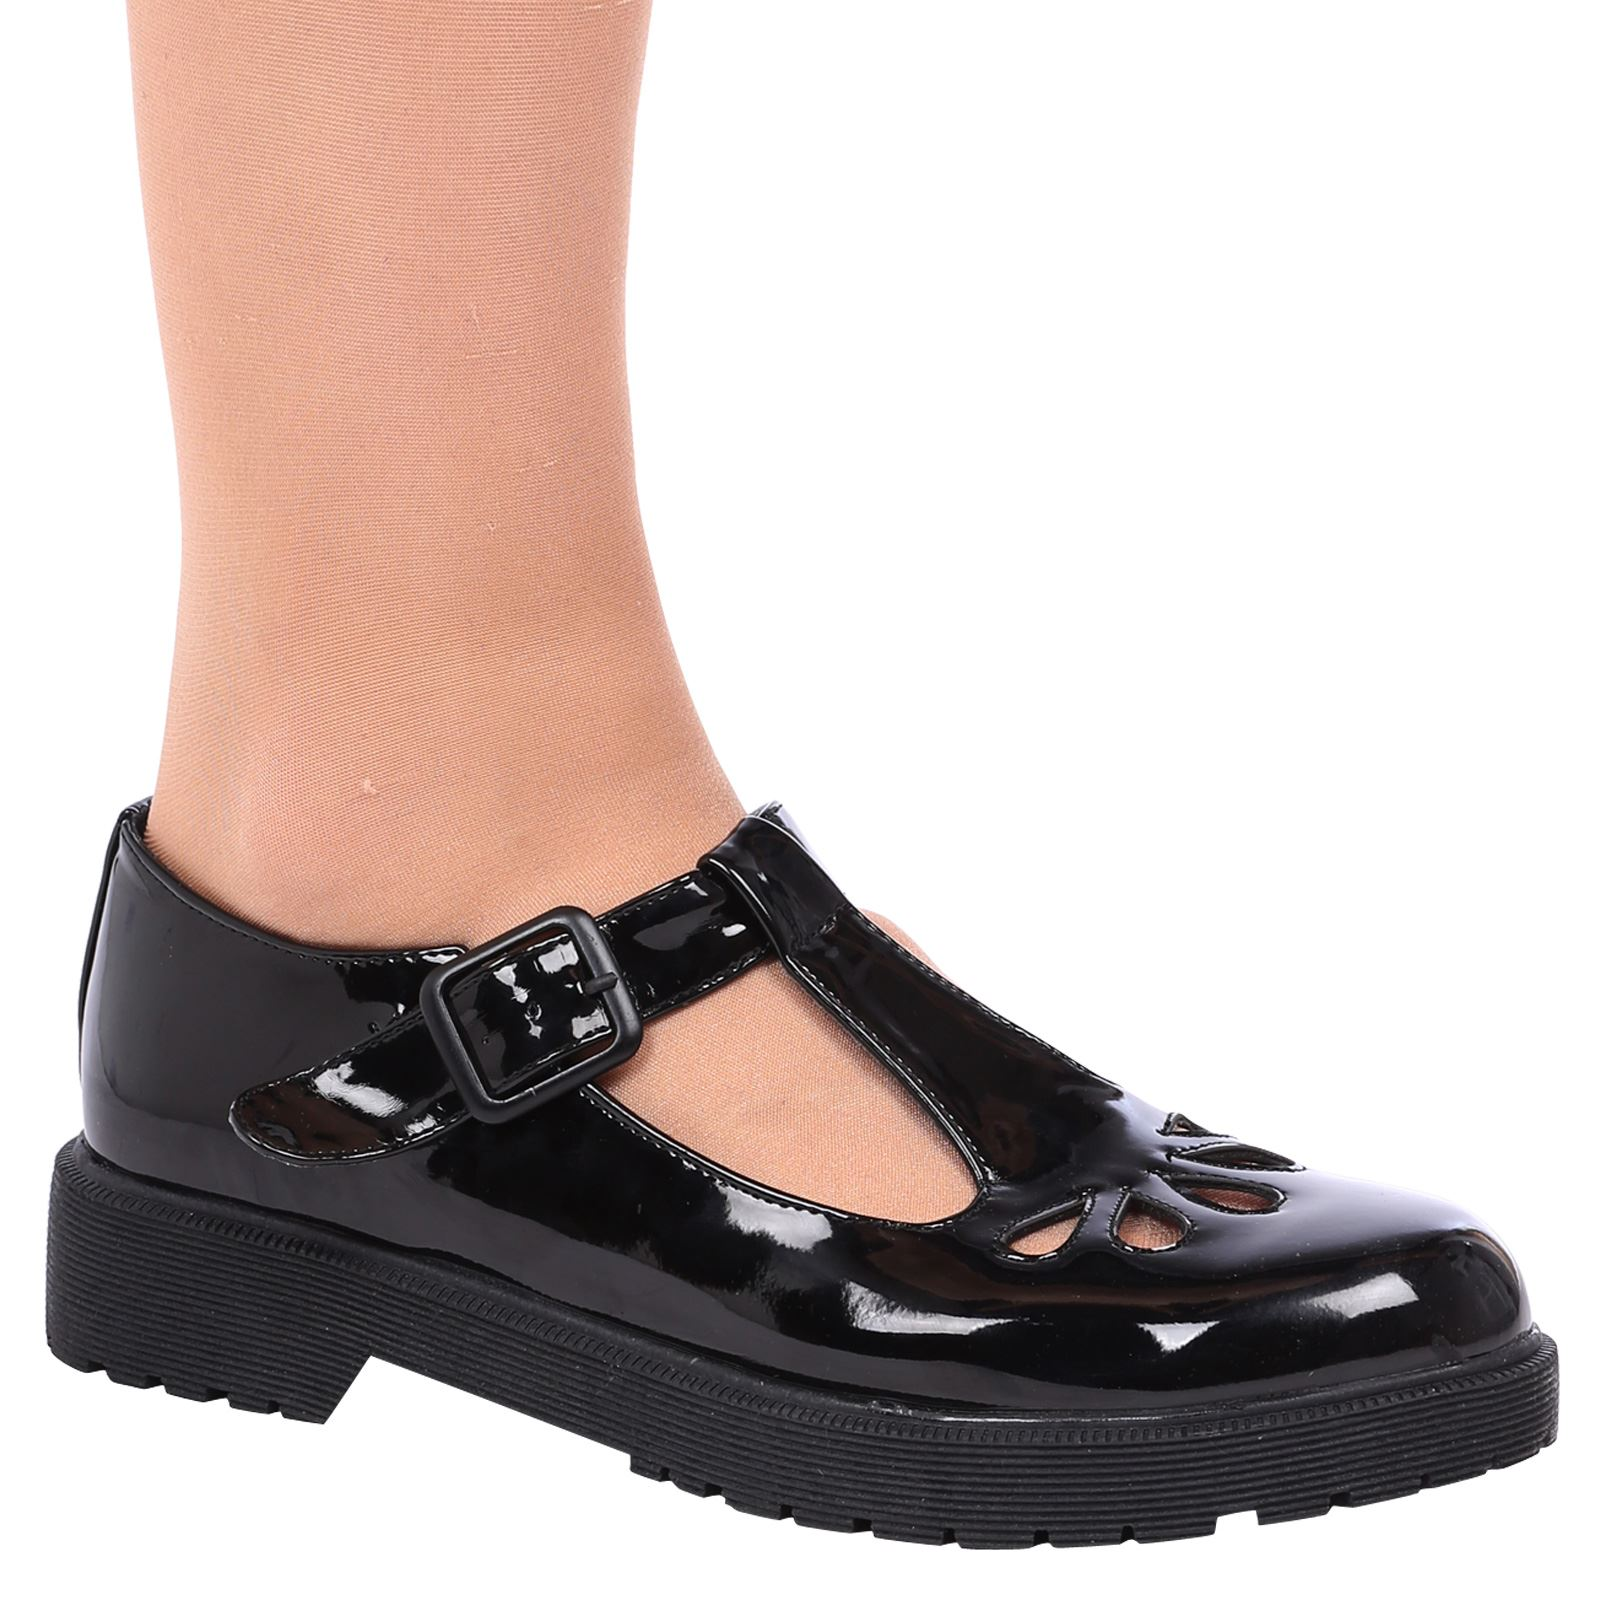 Browse boys and girls styles for dressy and casual events. Get kids outfitted for every sport and physical activity with white gym shoes and black cleats made specially for basketball, golf, football, jazz dance or running. Be sure to stock up on beach and swim shoes for the summer, along with rain boots and leather booties for the winter.